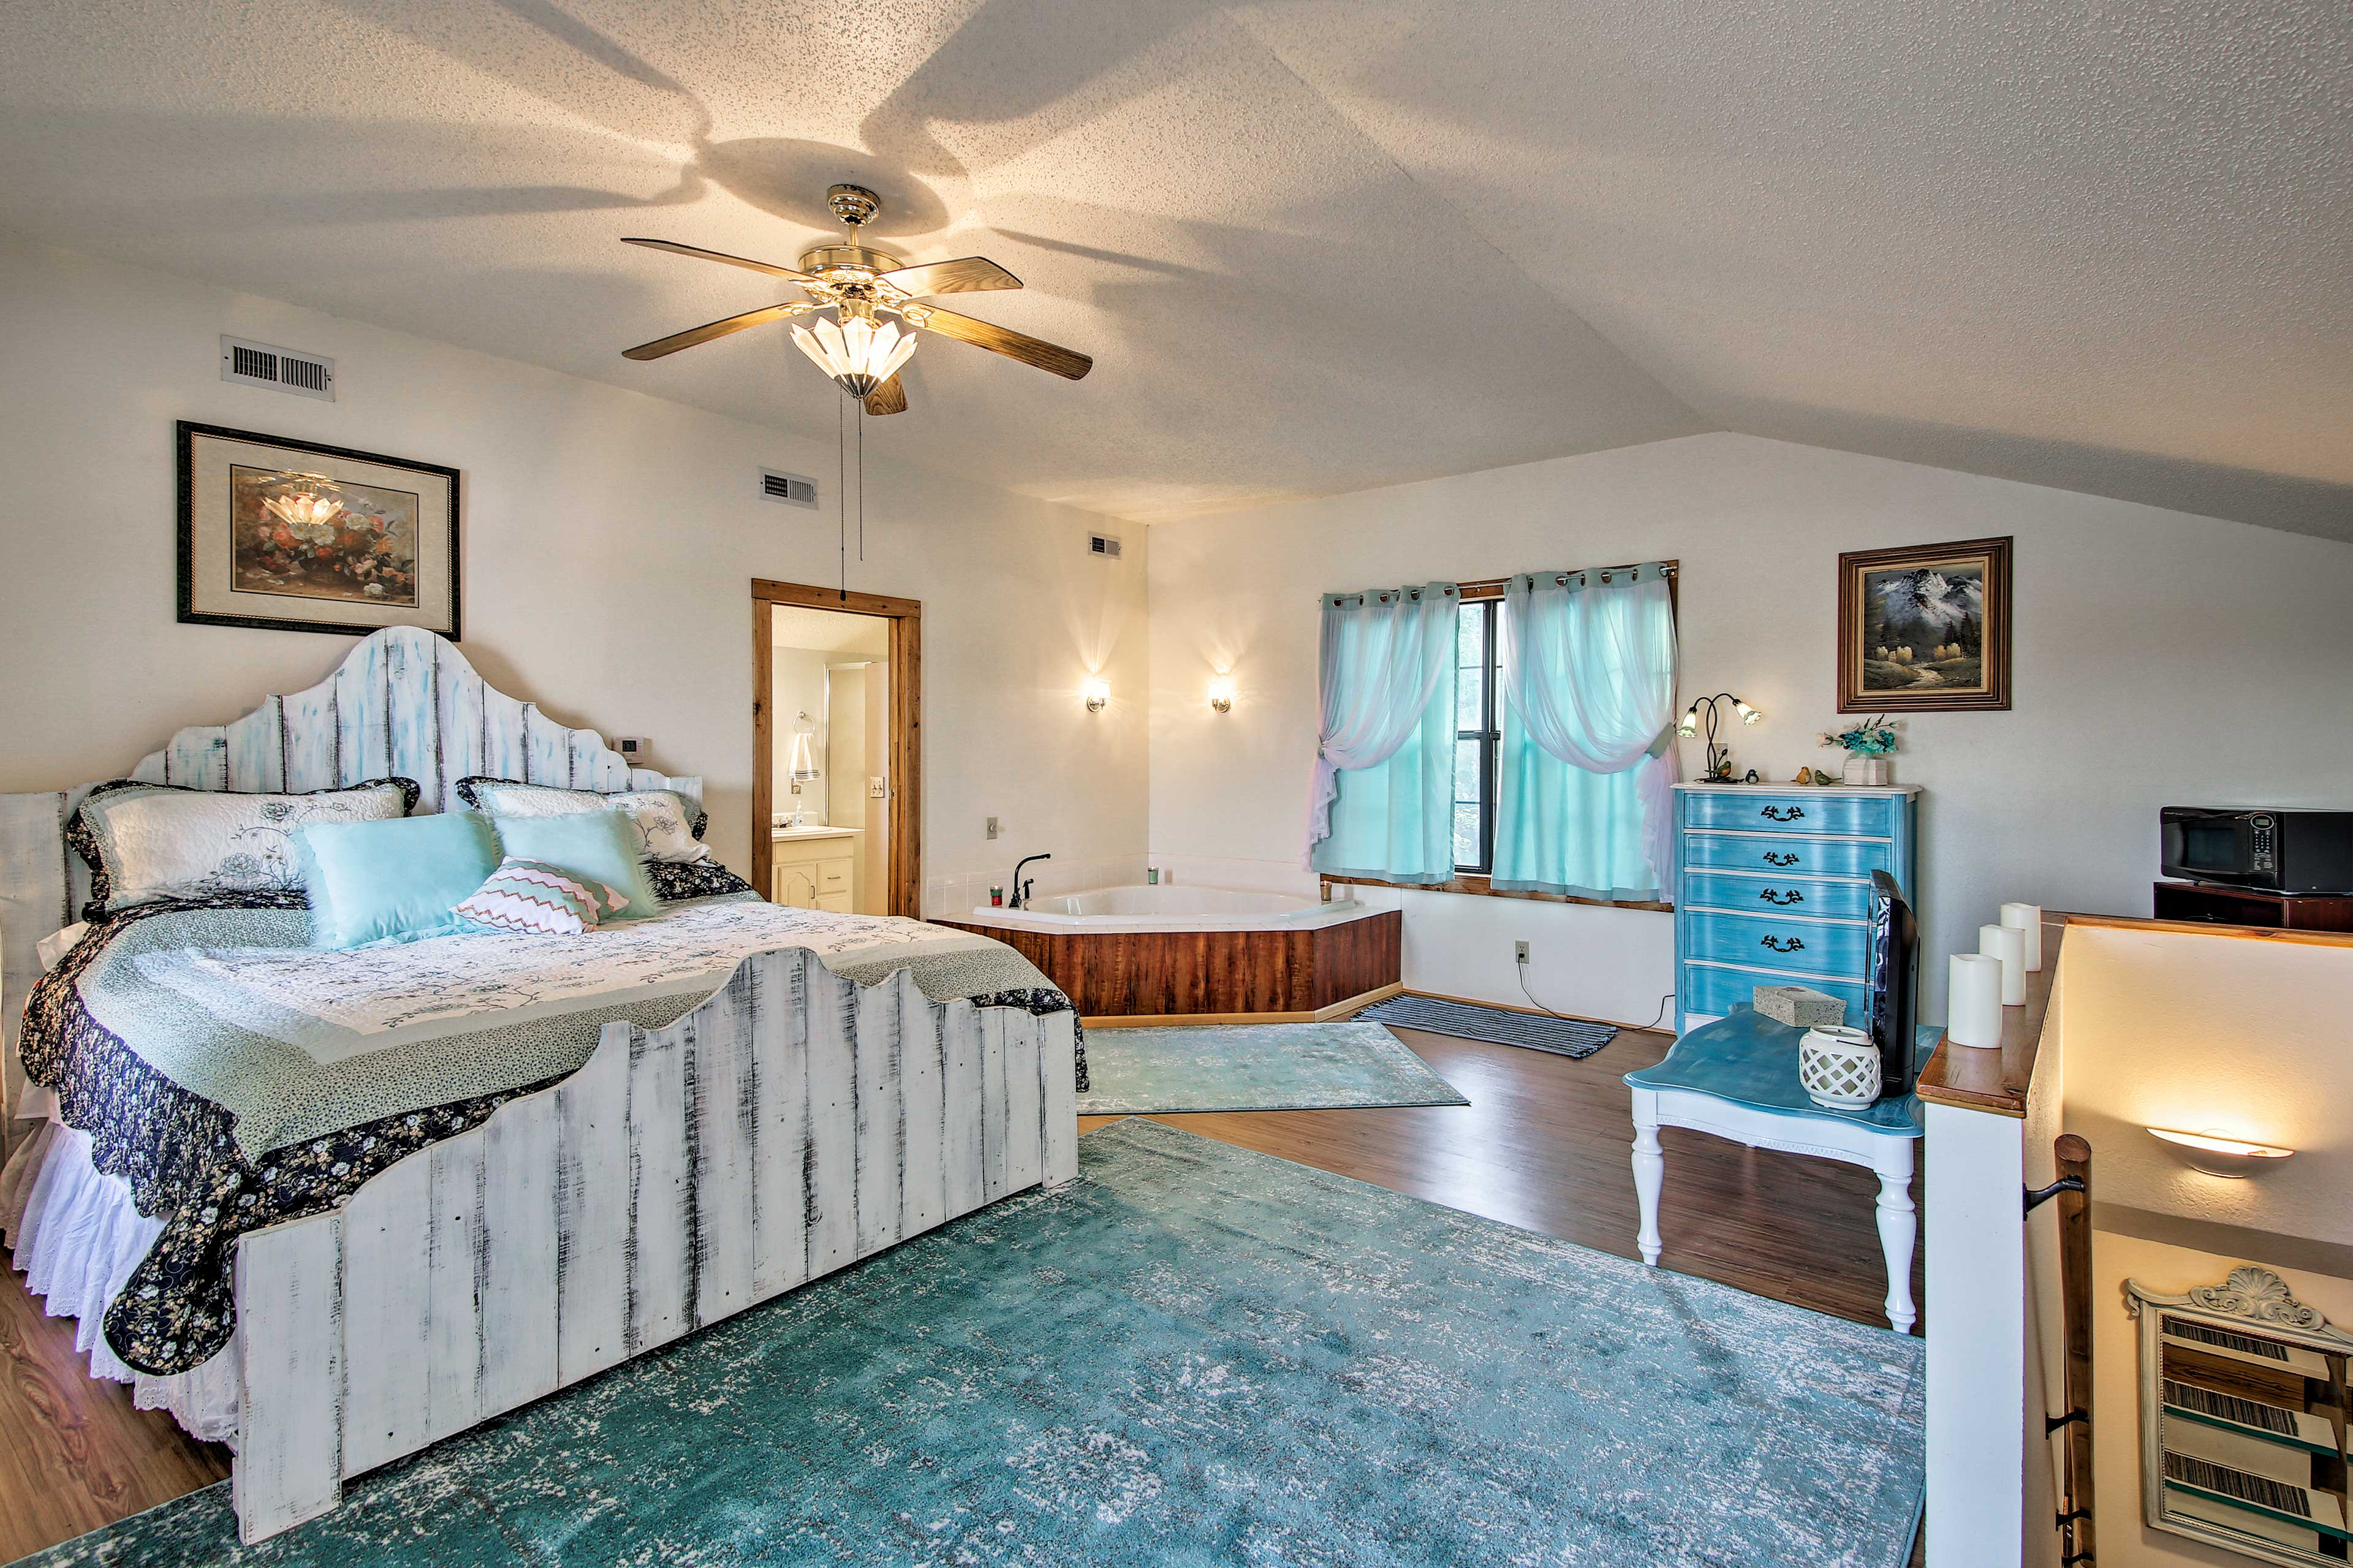 The master bedroom boasts a king-sized bed and bath tub.